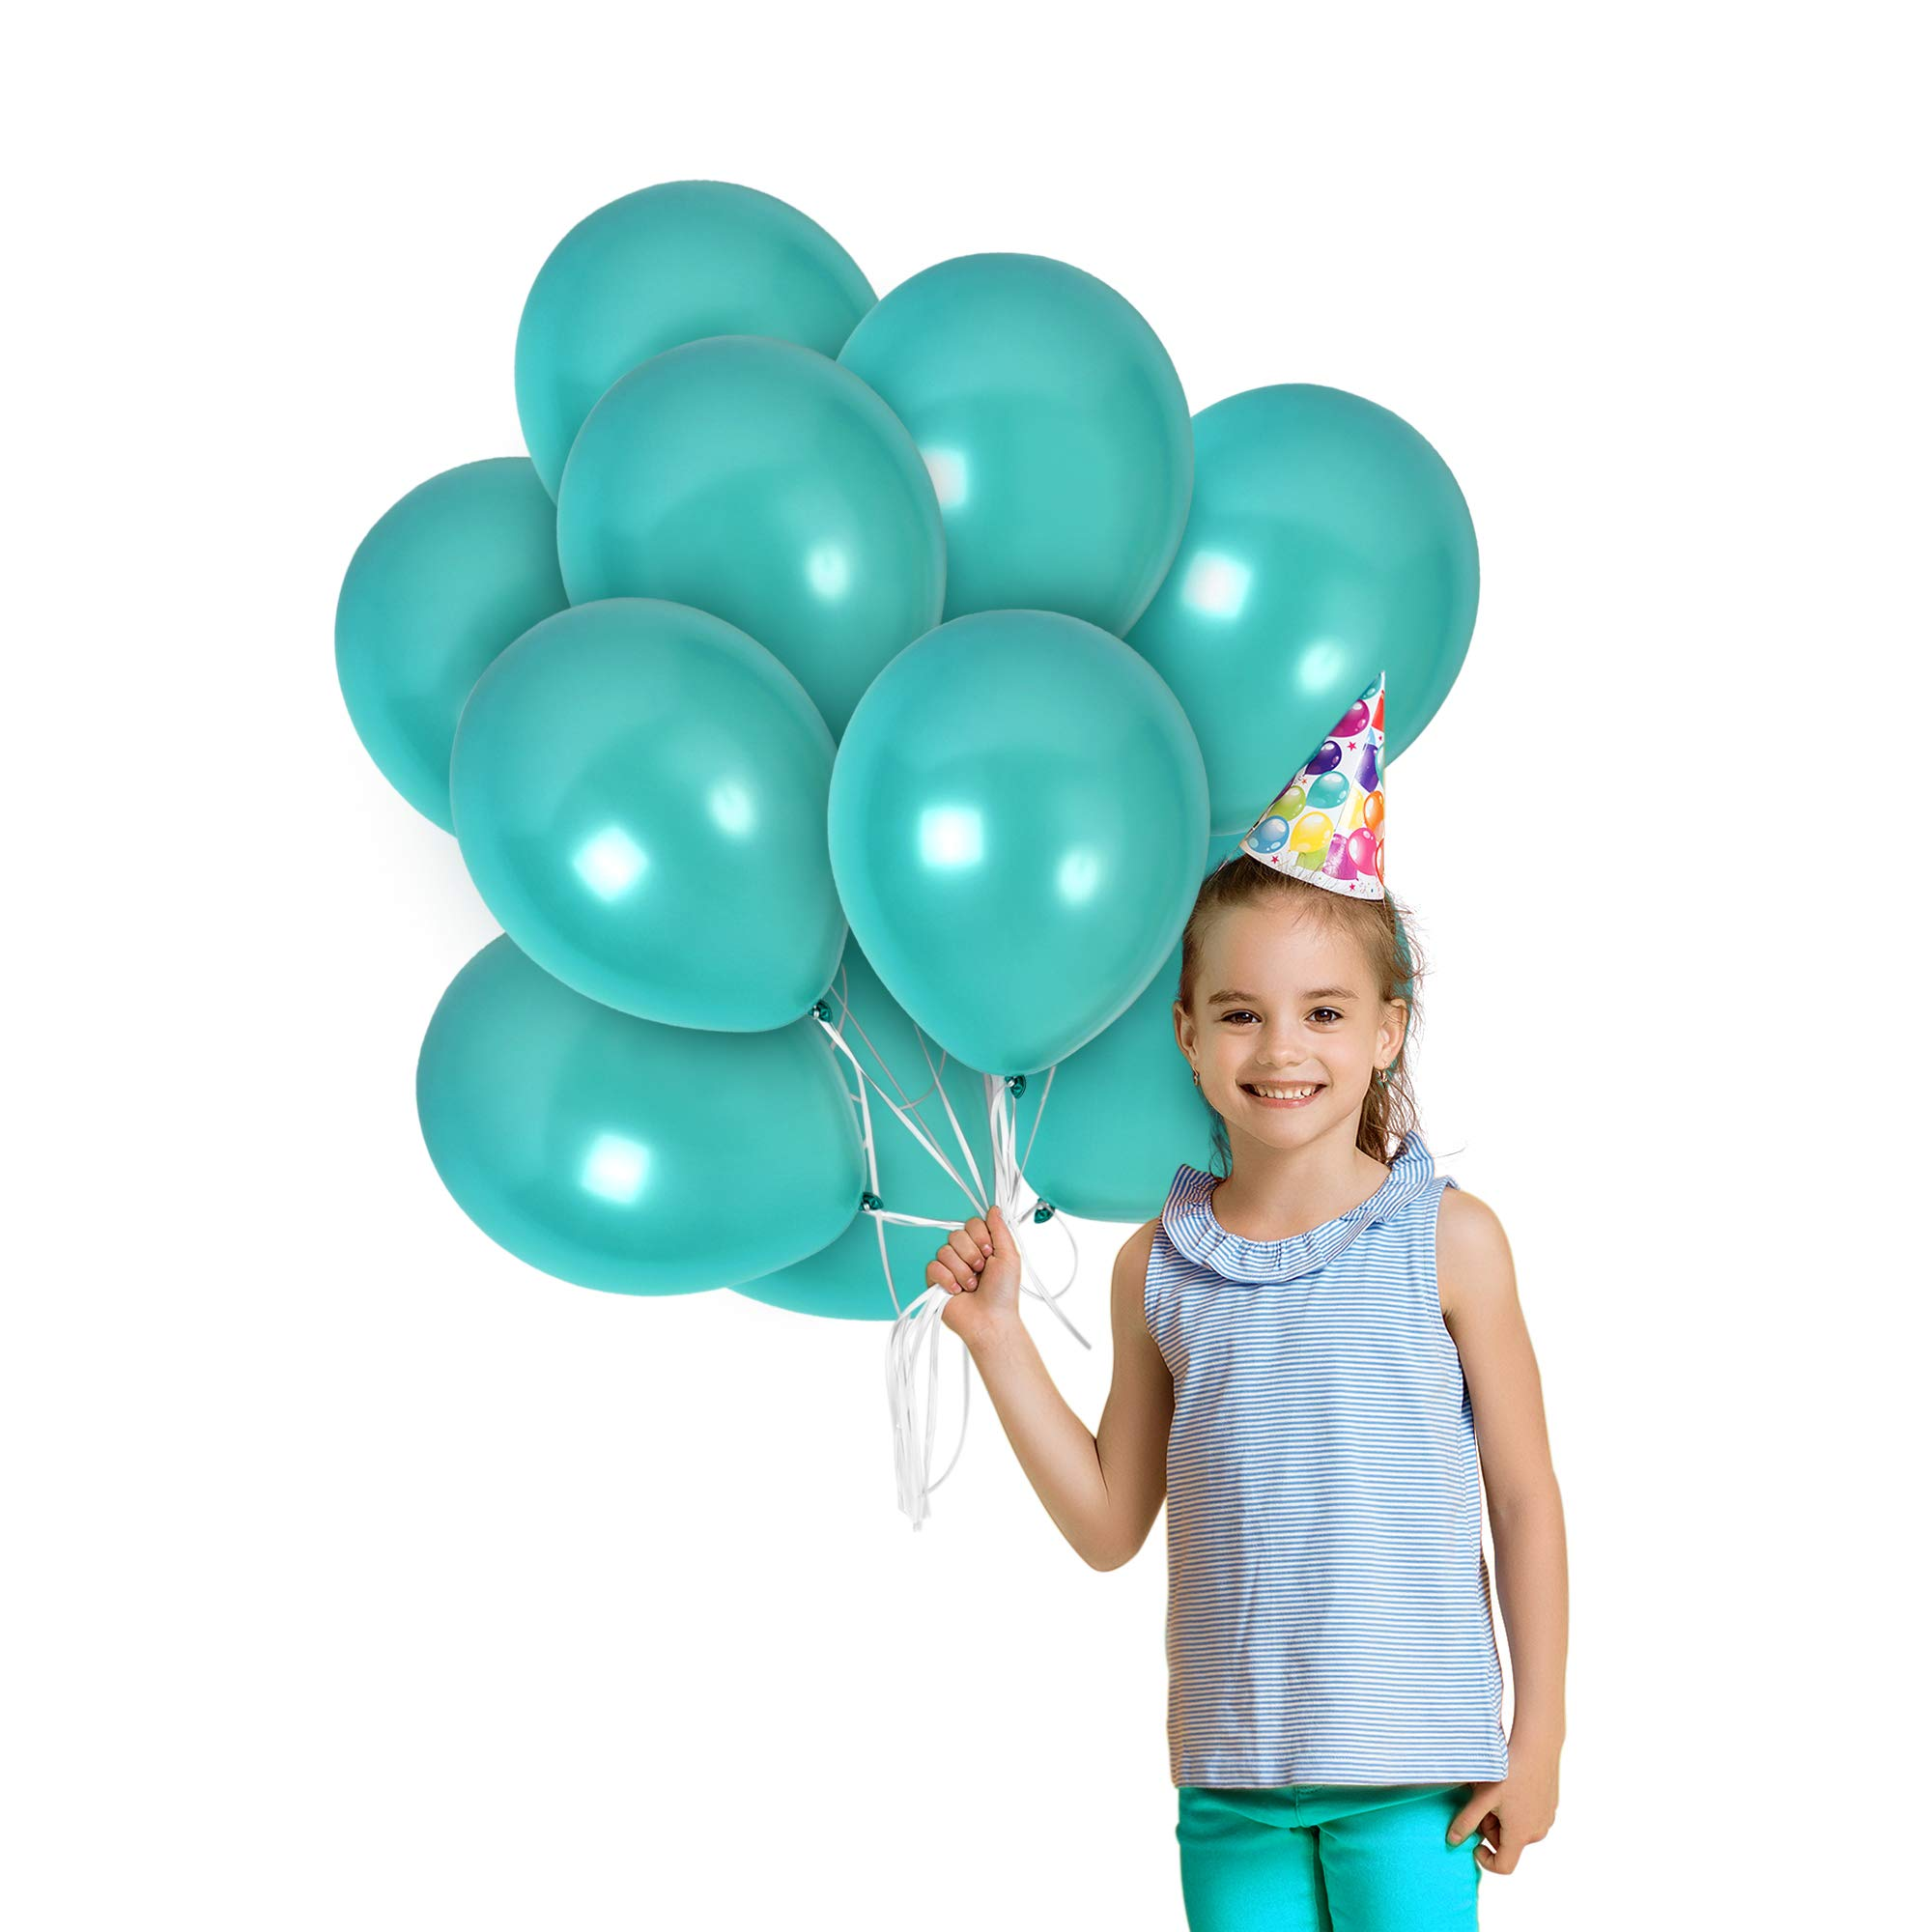 Metallic Torquoise Teal Balloons Pack of 36 Pearlized Chrome Latex 12 Inch for Engagement Wedding Bridal Shower Bachelorette Birthday Graduation Party Supplies